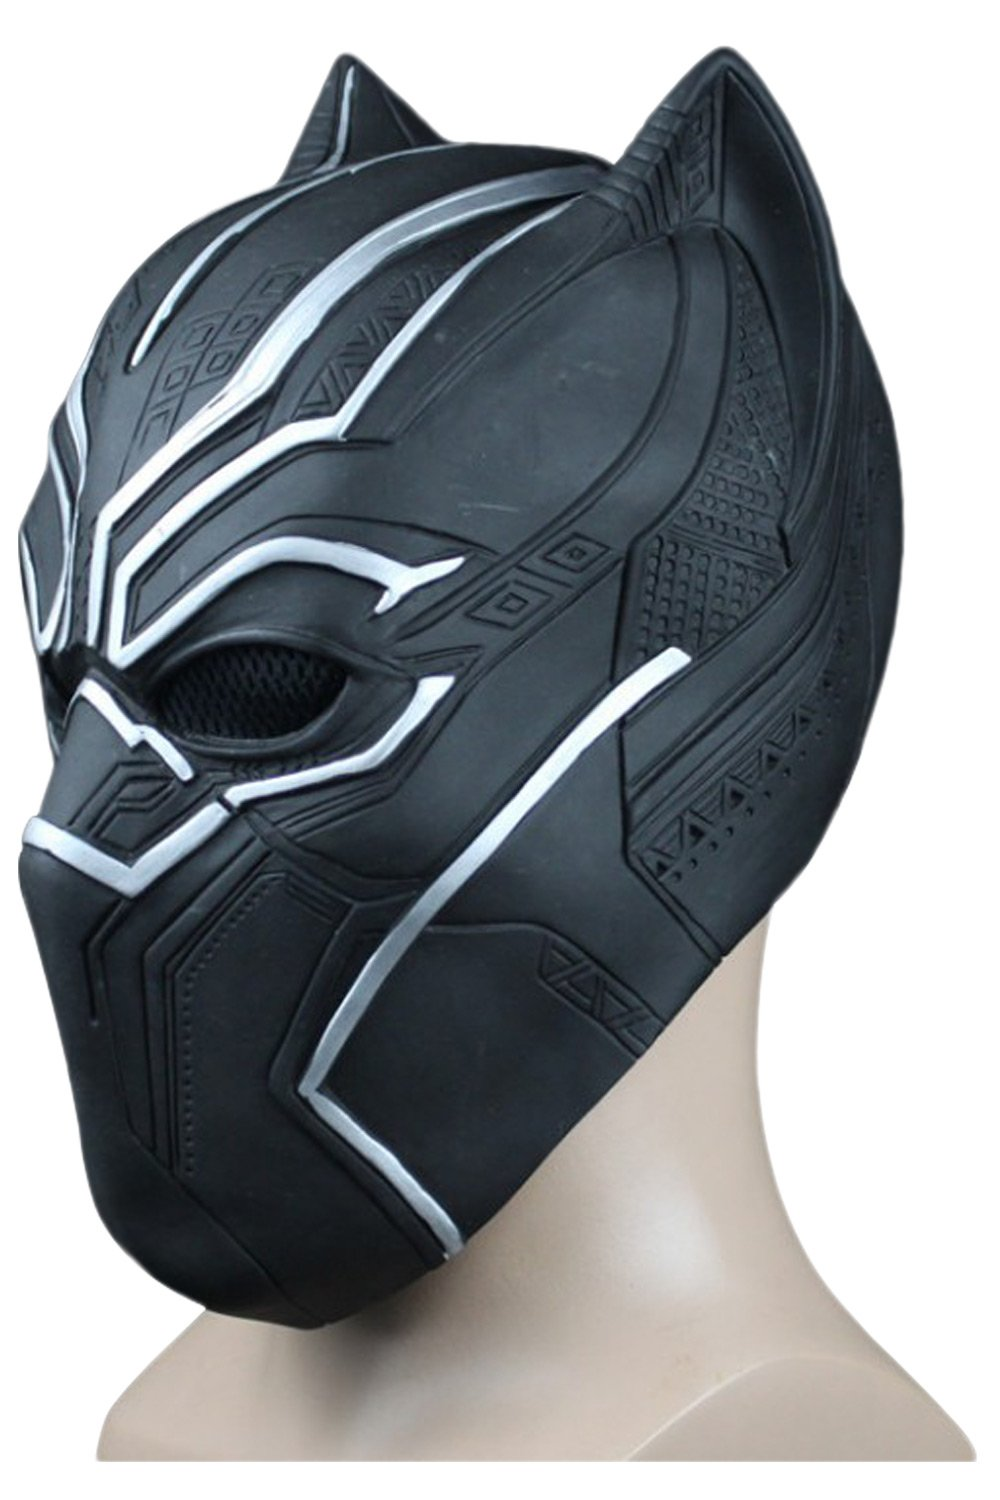 Marvel 2018 Black Panther T'Challa Maske Cosplay Requisite